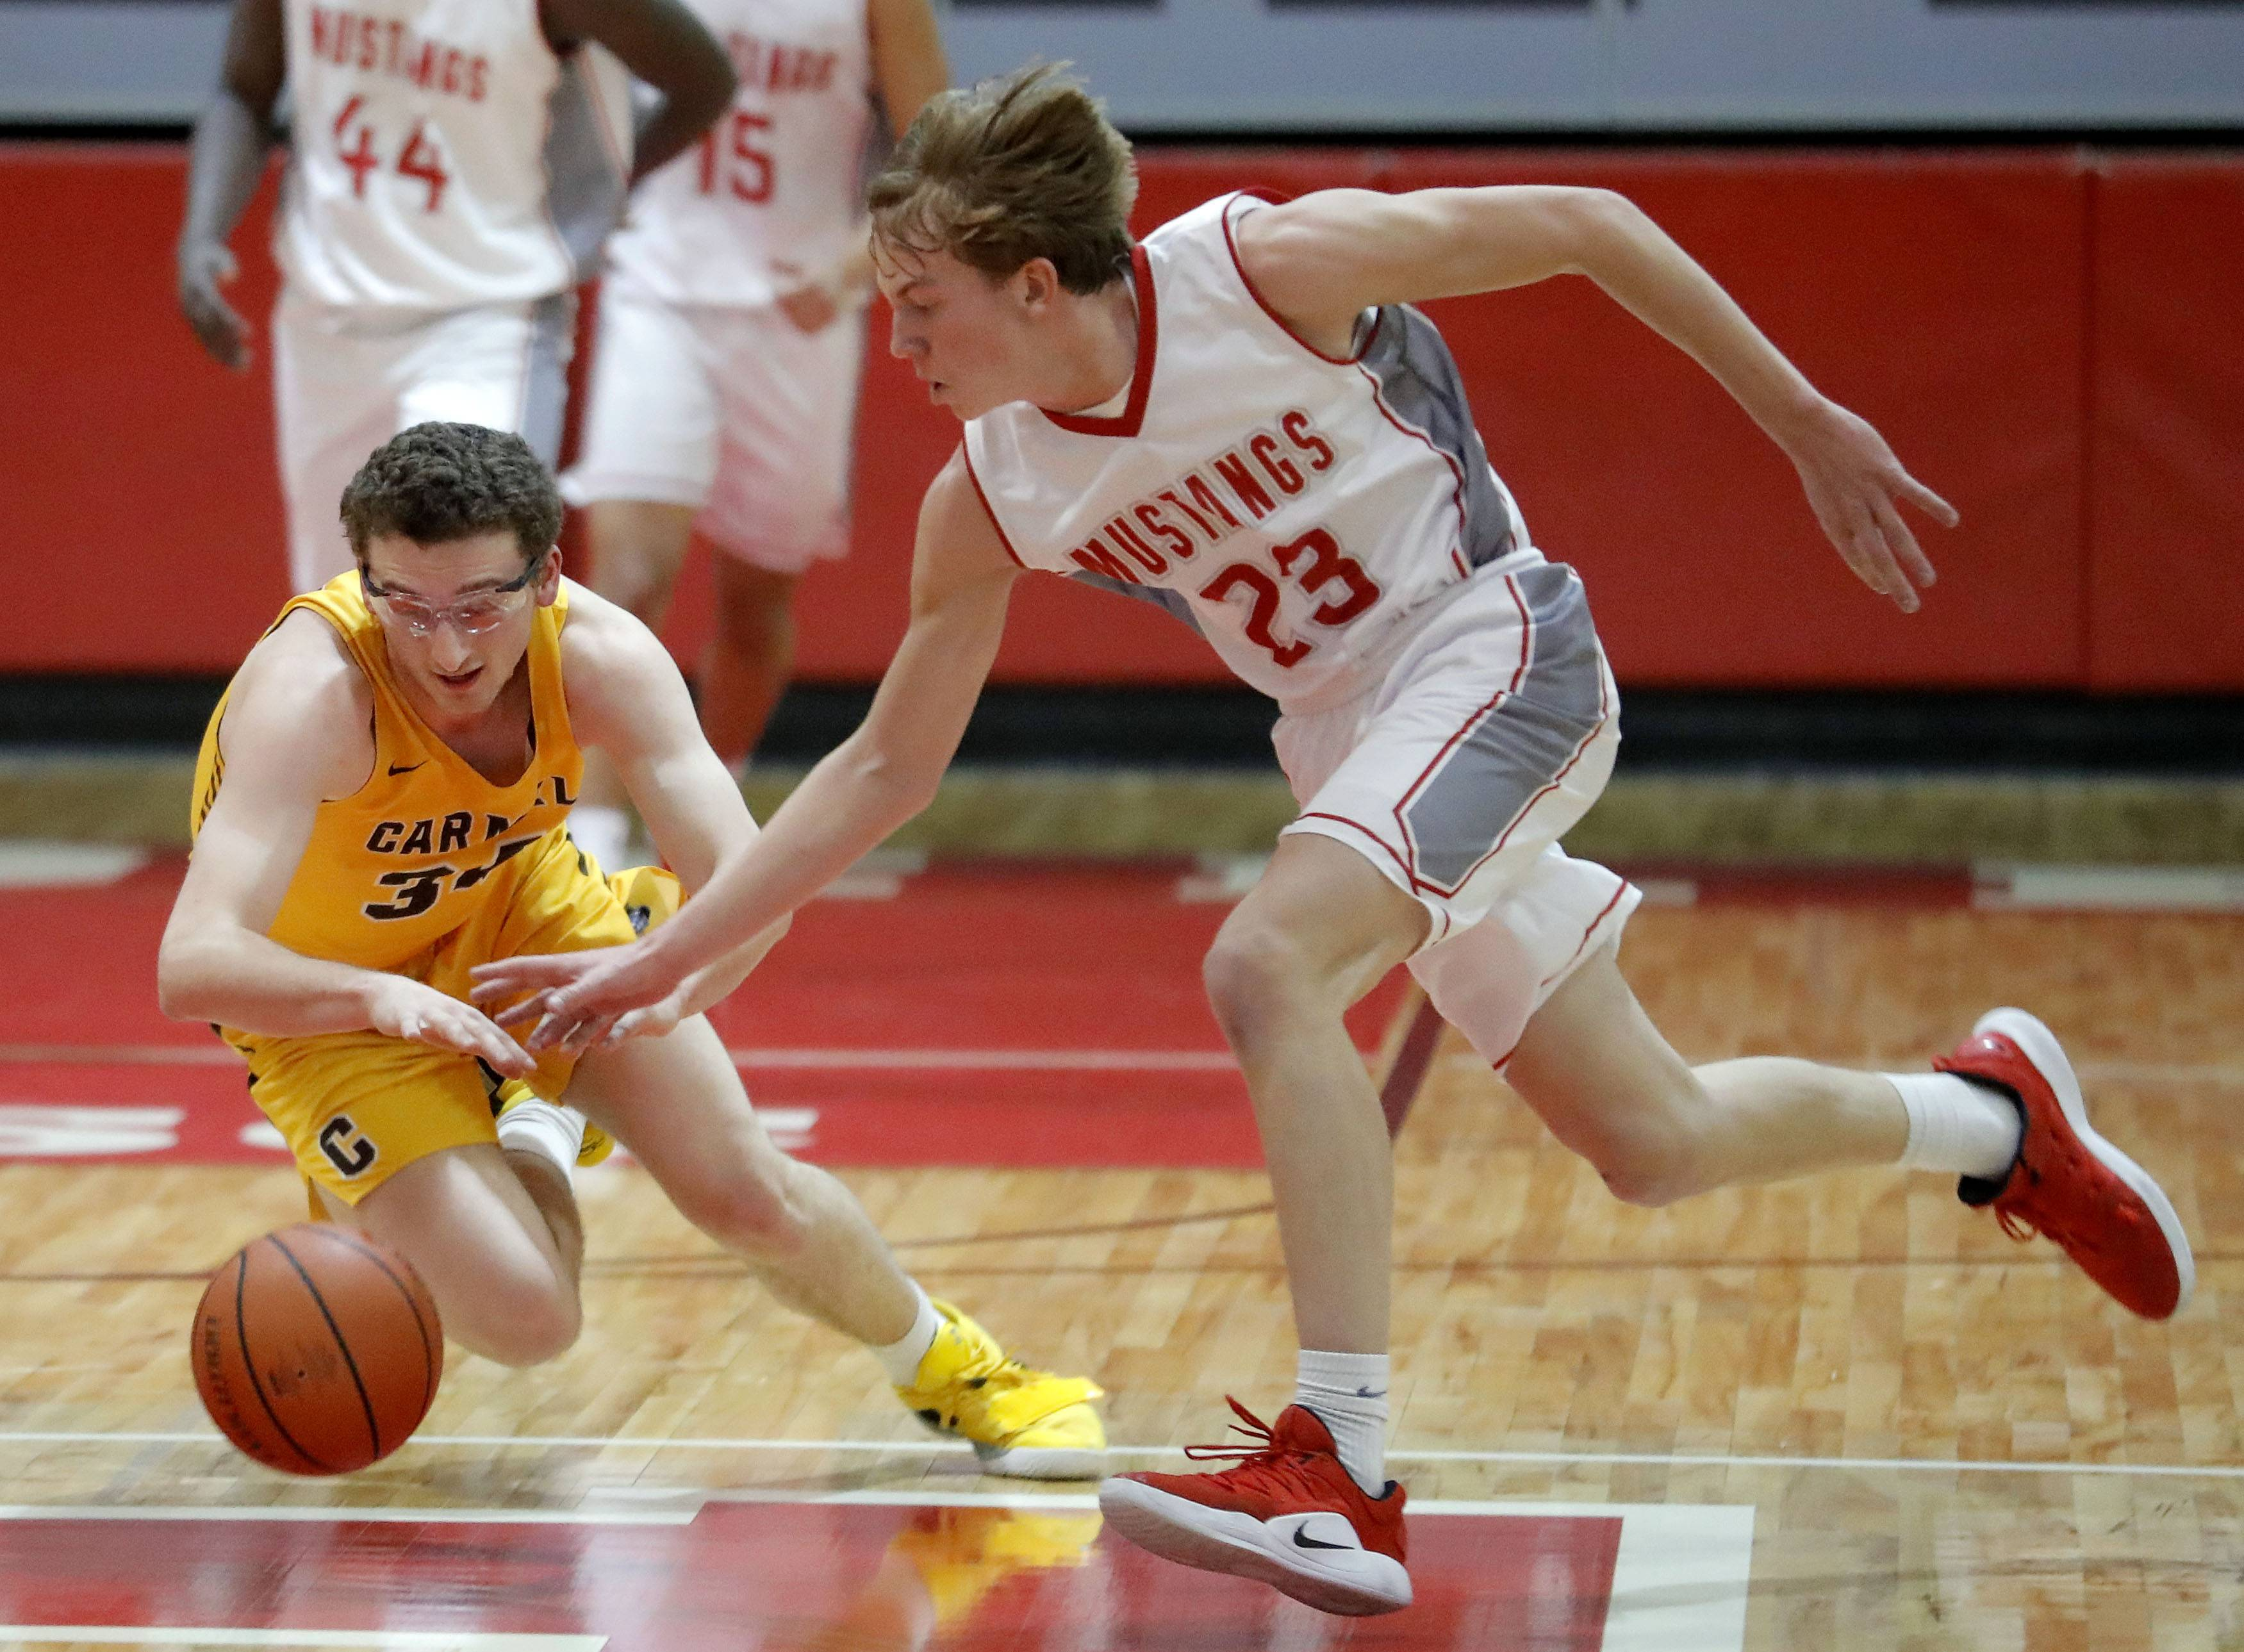 Carmel's Johnny Roeser left, and Mundelein's Jack Bikus battle for a loose ball during their game Wednesday at Mundelein High School.